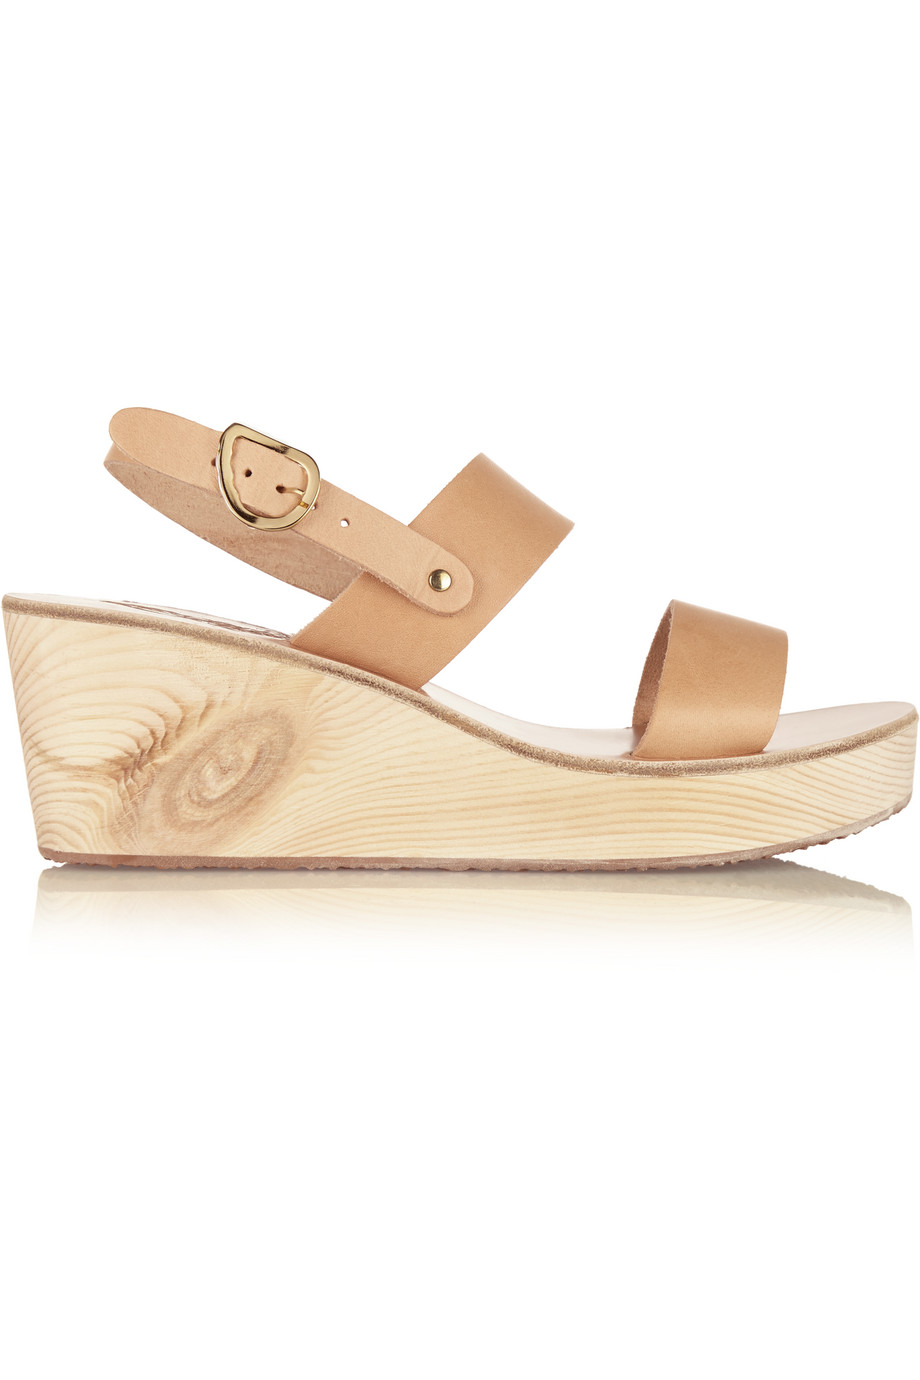 Clio Clog Leather Wedge Sandals, Ancient Greek Sandals, Women's US Size: 5.5, Size: 36